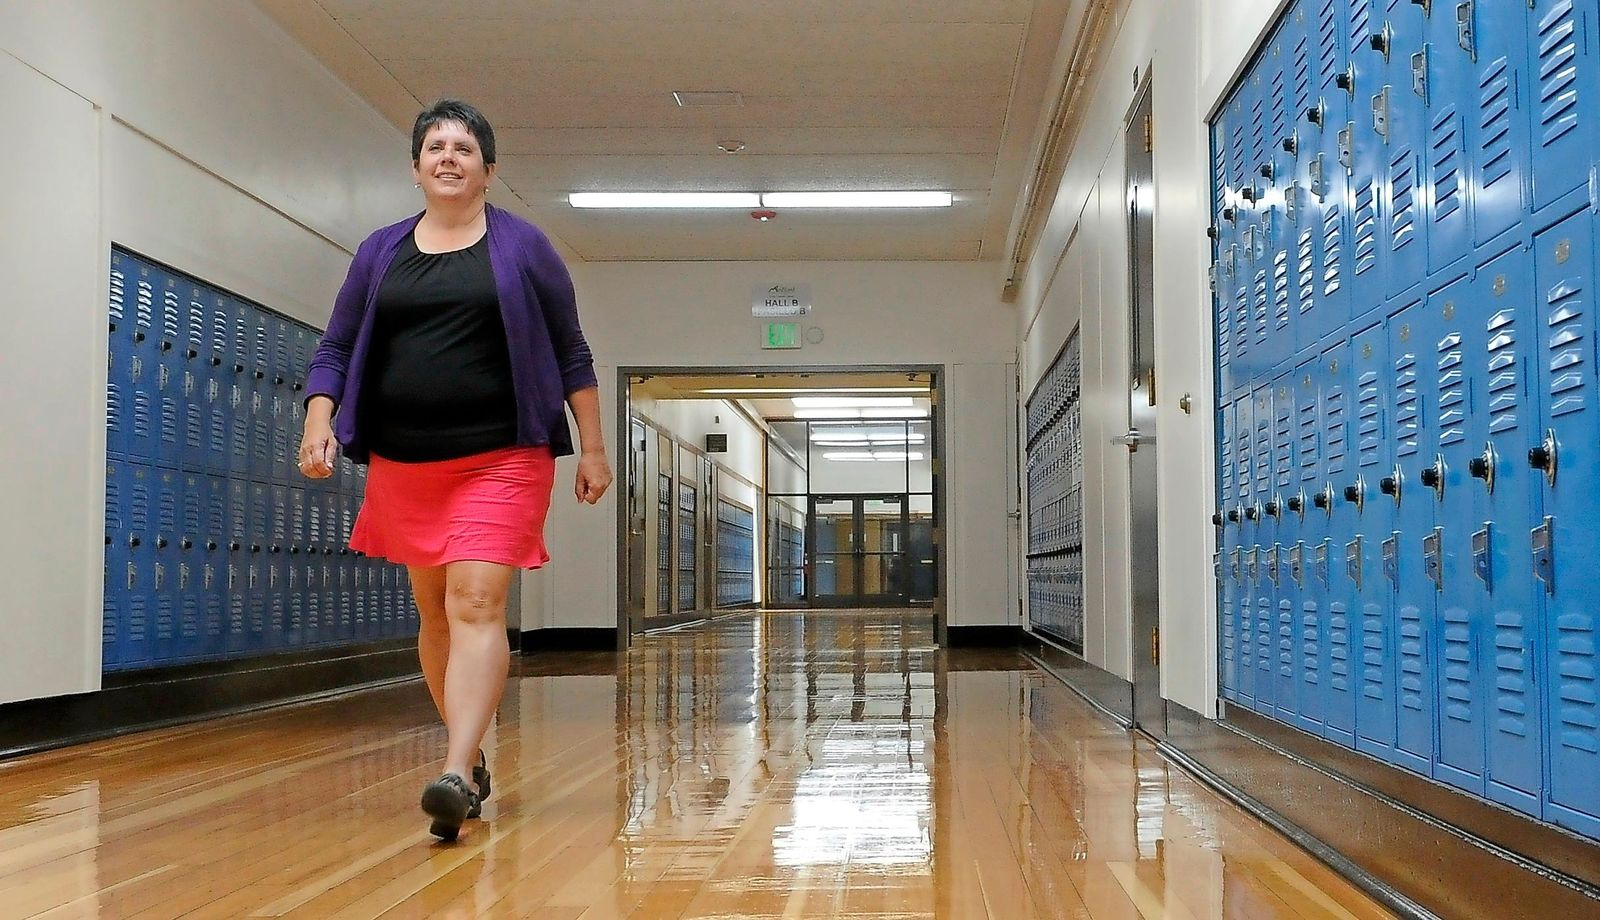 Amy Tiger walks through the hall way of Central High School and the Medford School District offices. (Andy Atkinson / Mail Tribune)